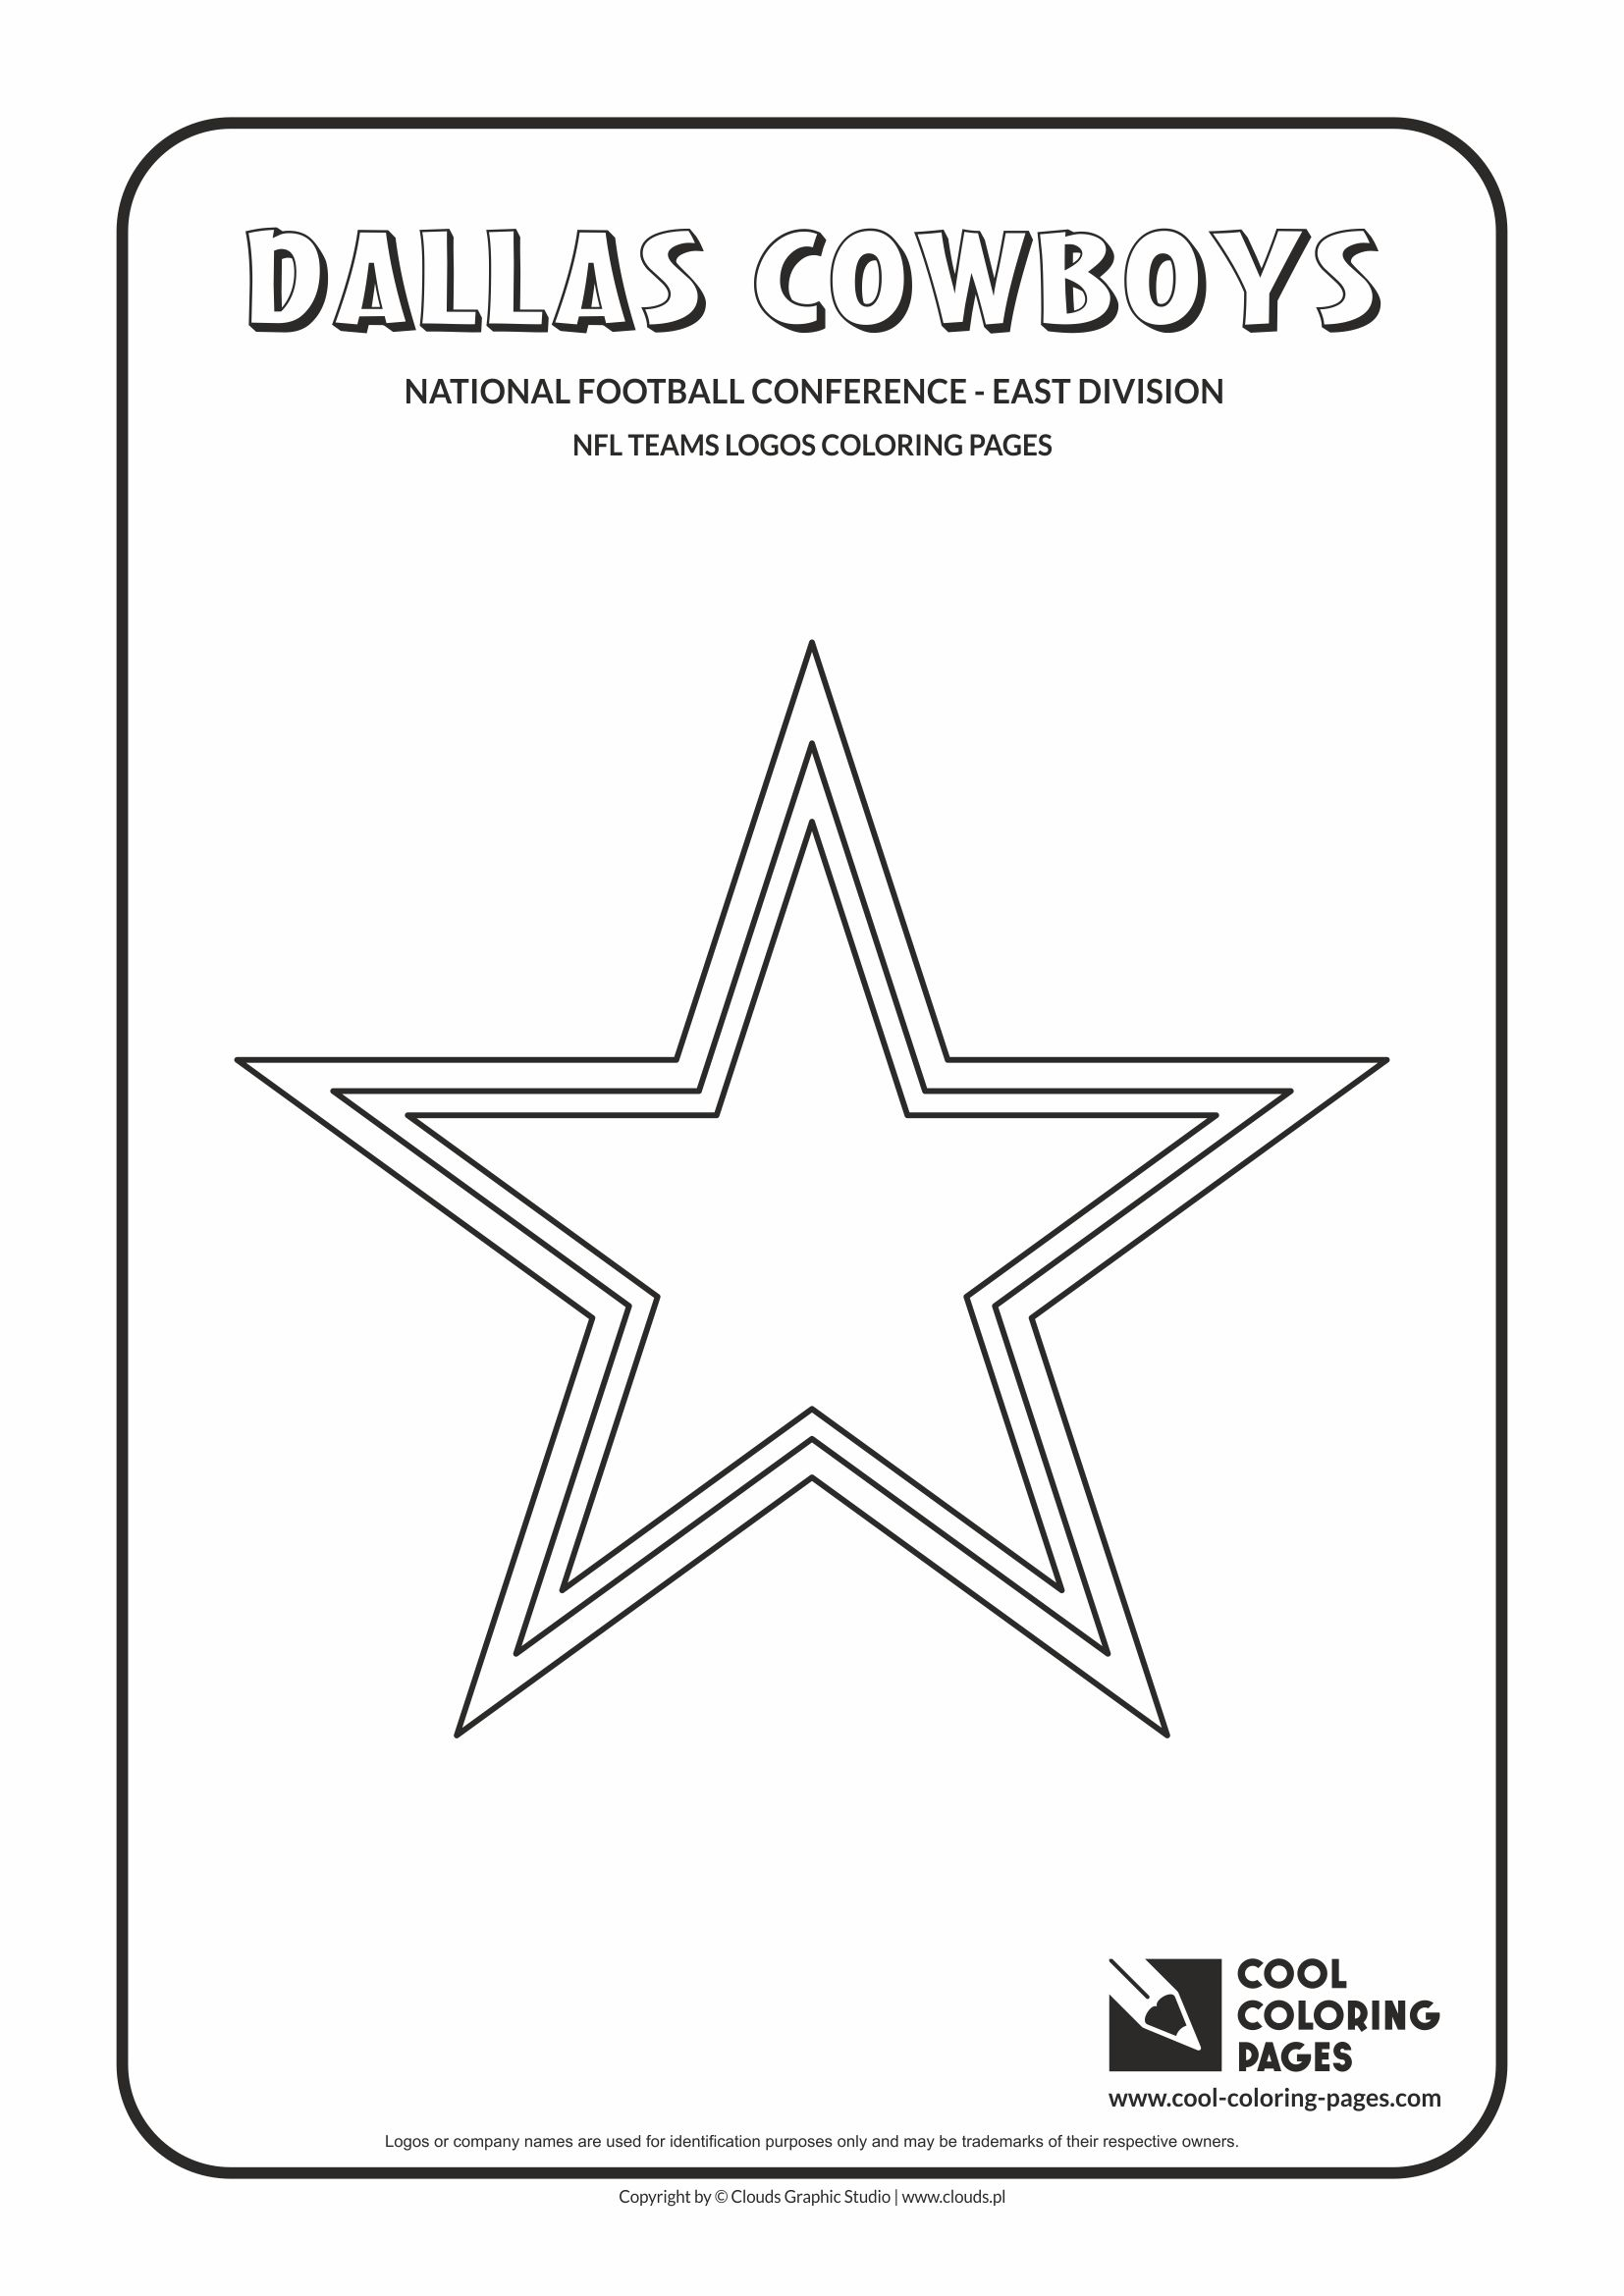 cool coloring pages nfl american football clubs logos national football conference east division - Nfl Football Logos Coloring Pages